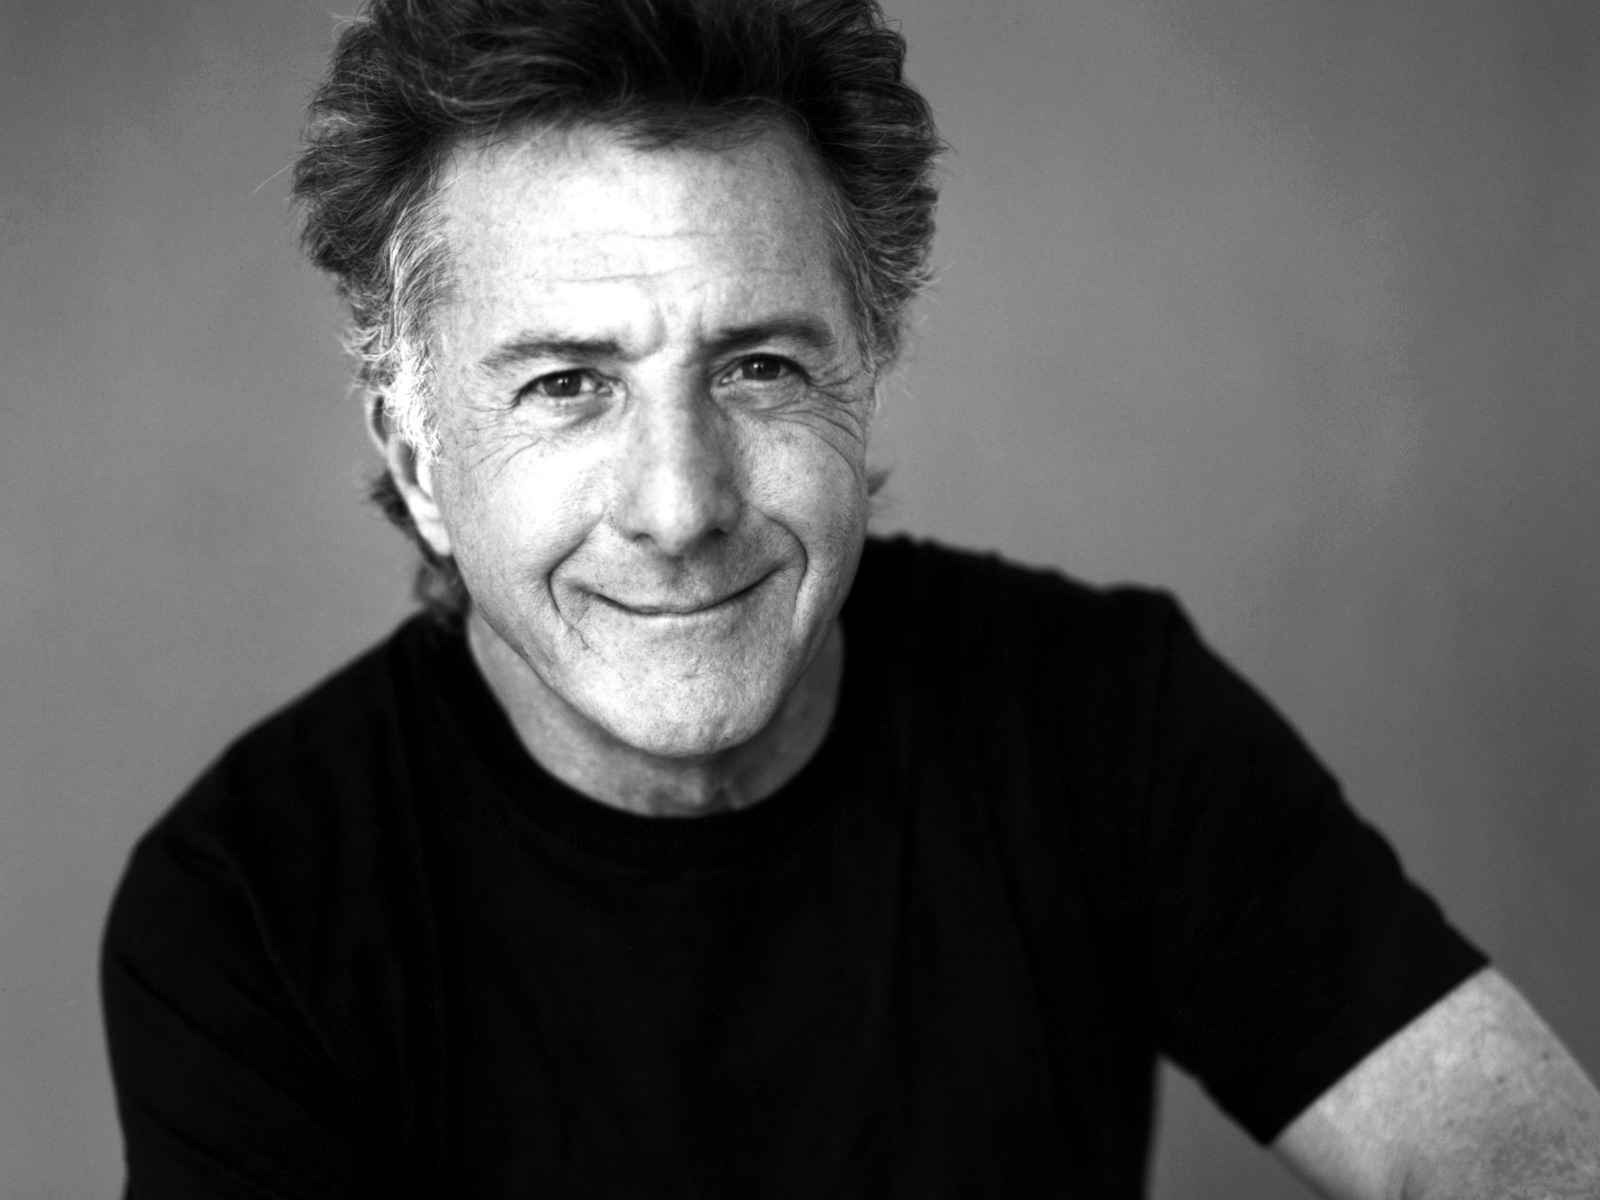 monochrome dustin hoffman computer wallpaper 56421